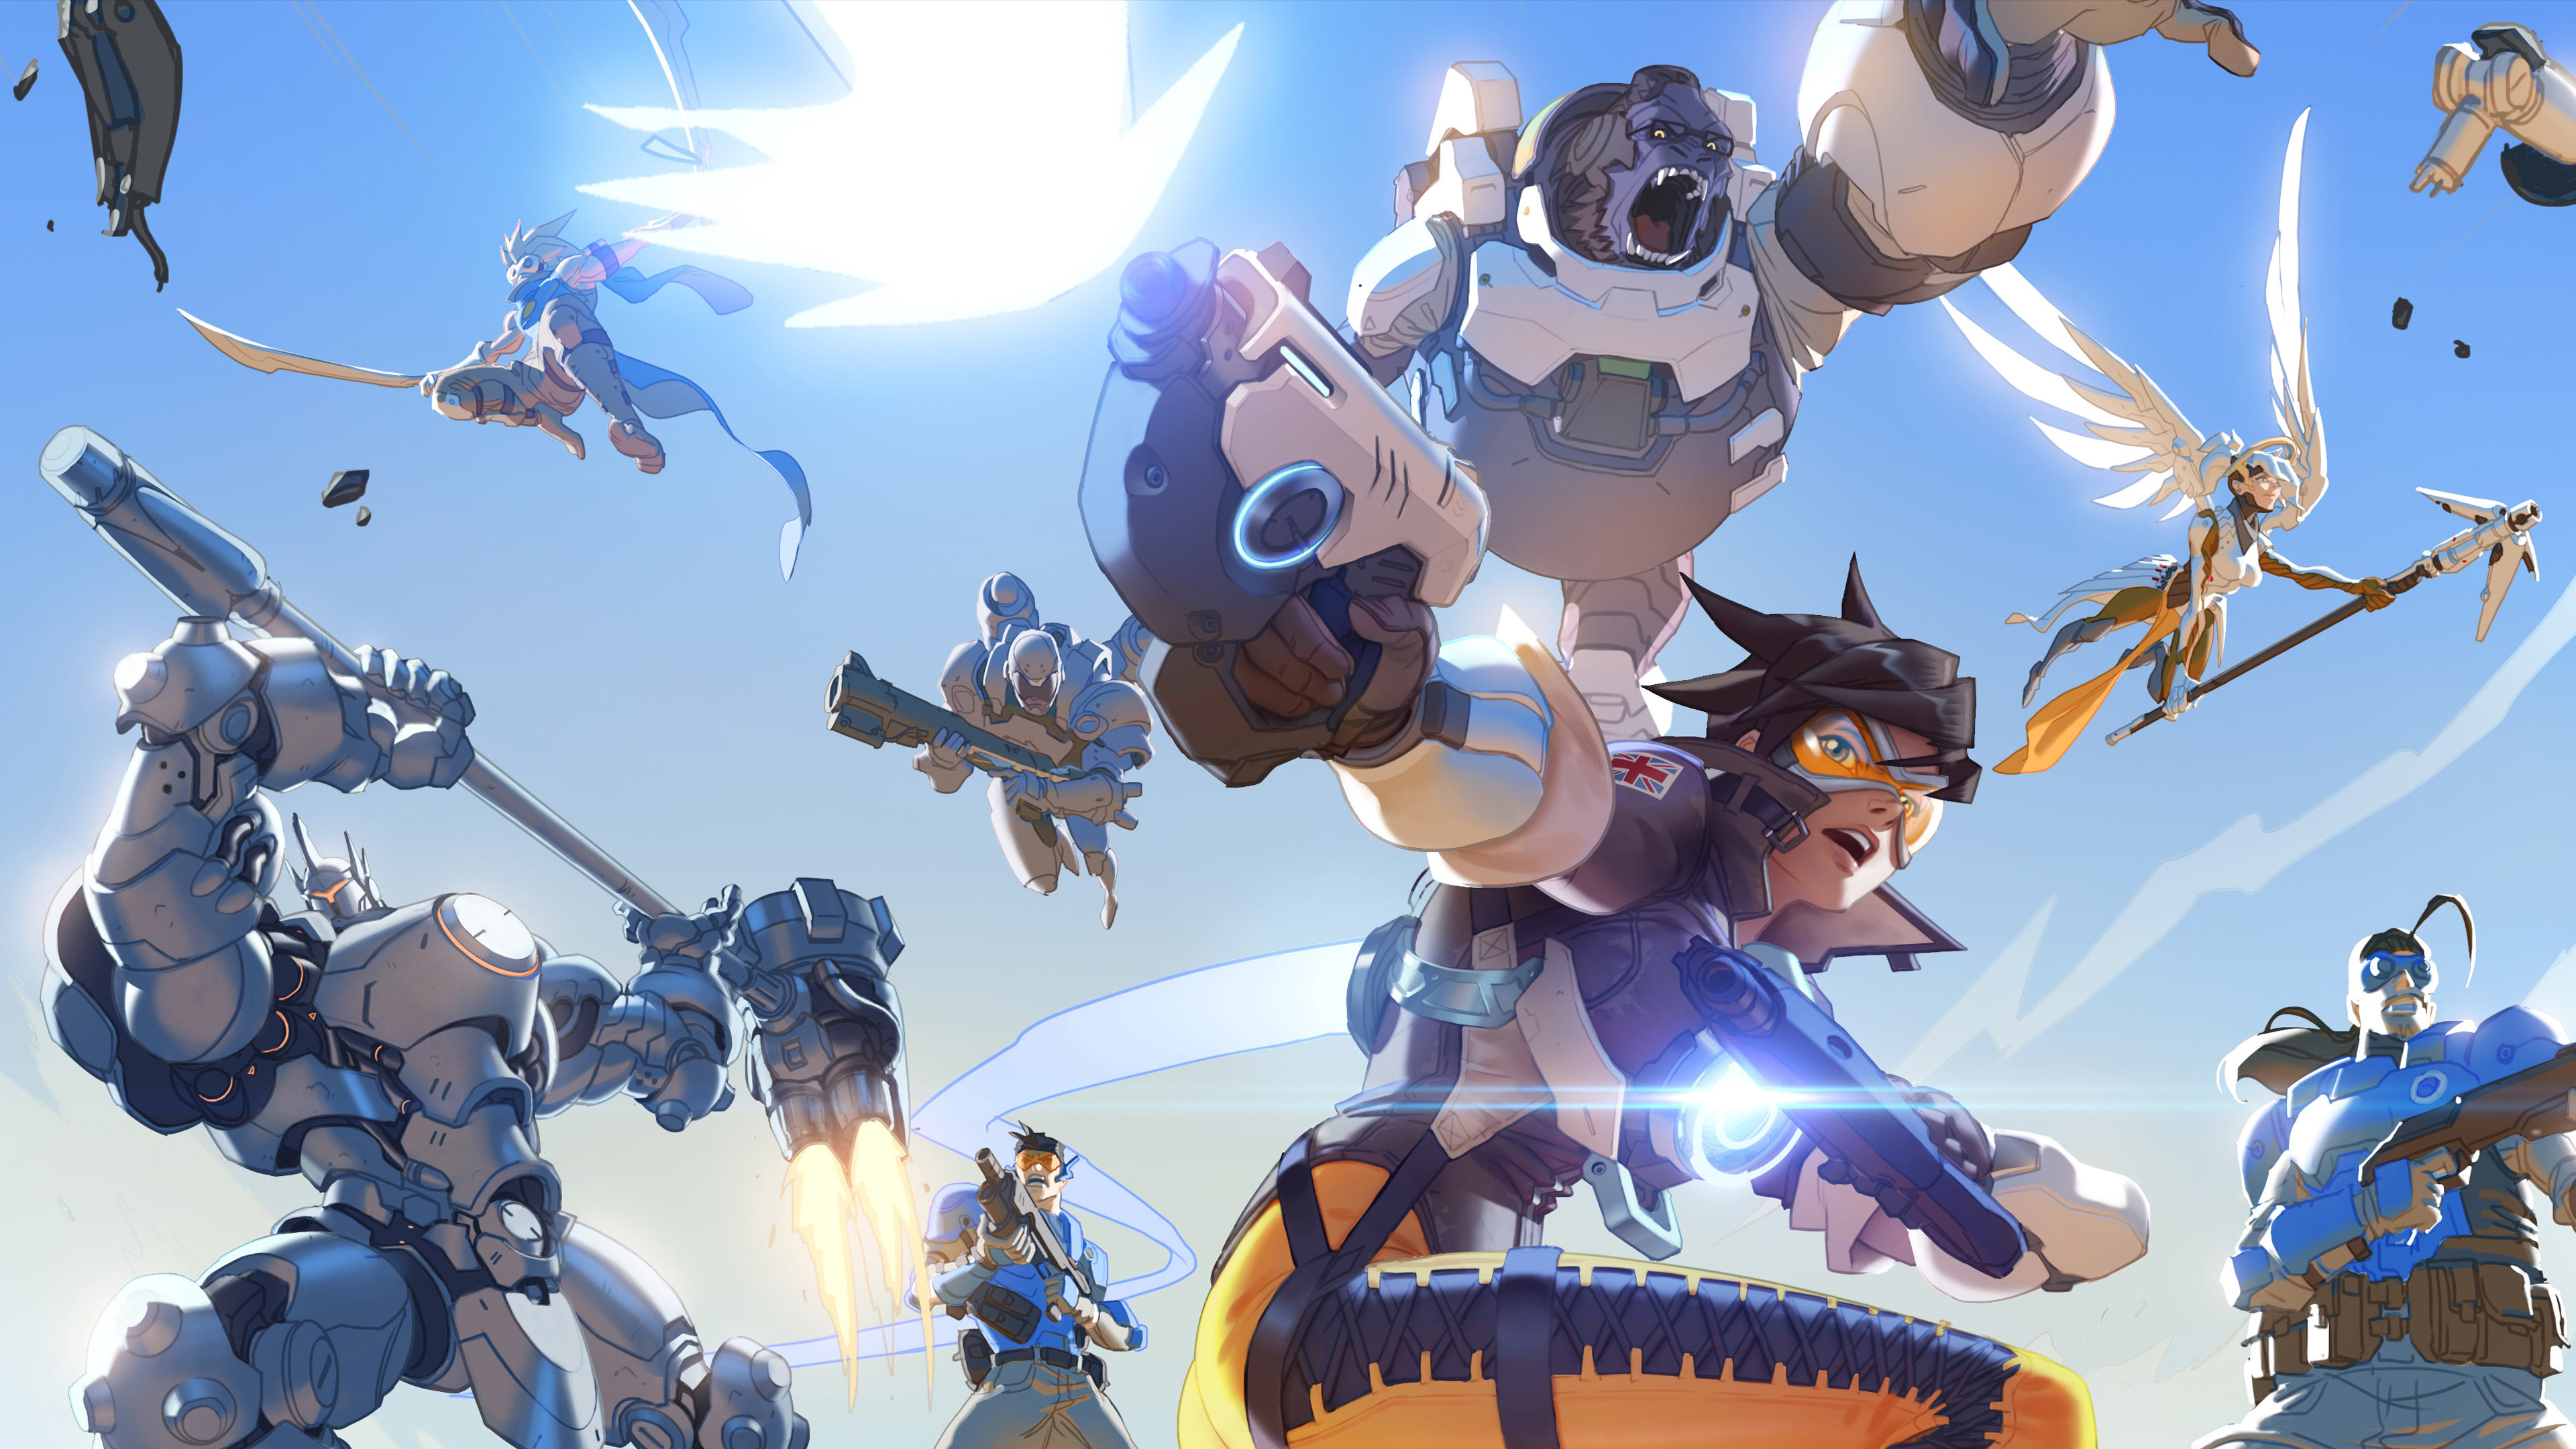 Overwatch Backgrounds Overwatch Storm Rising Omnic 84569